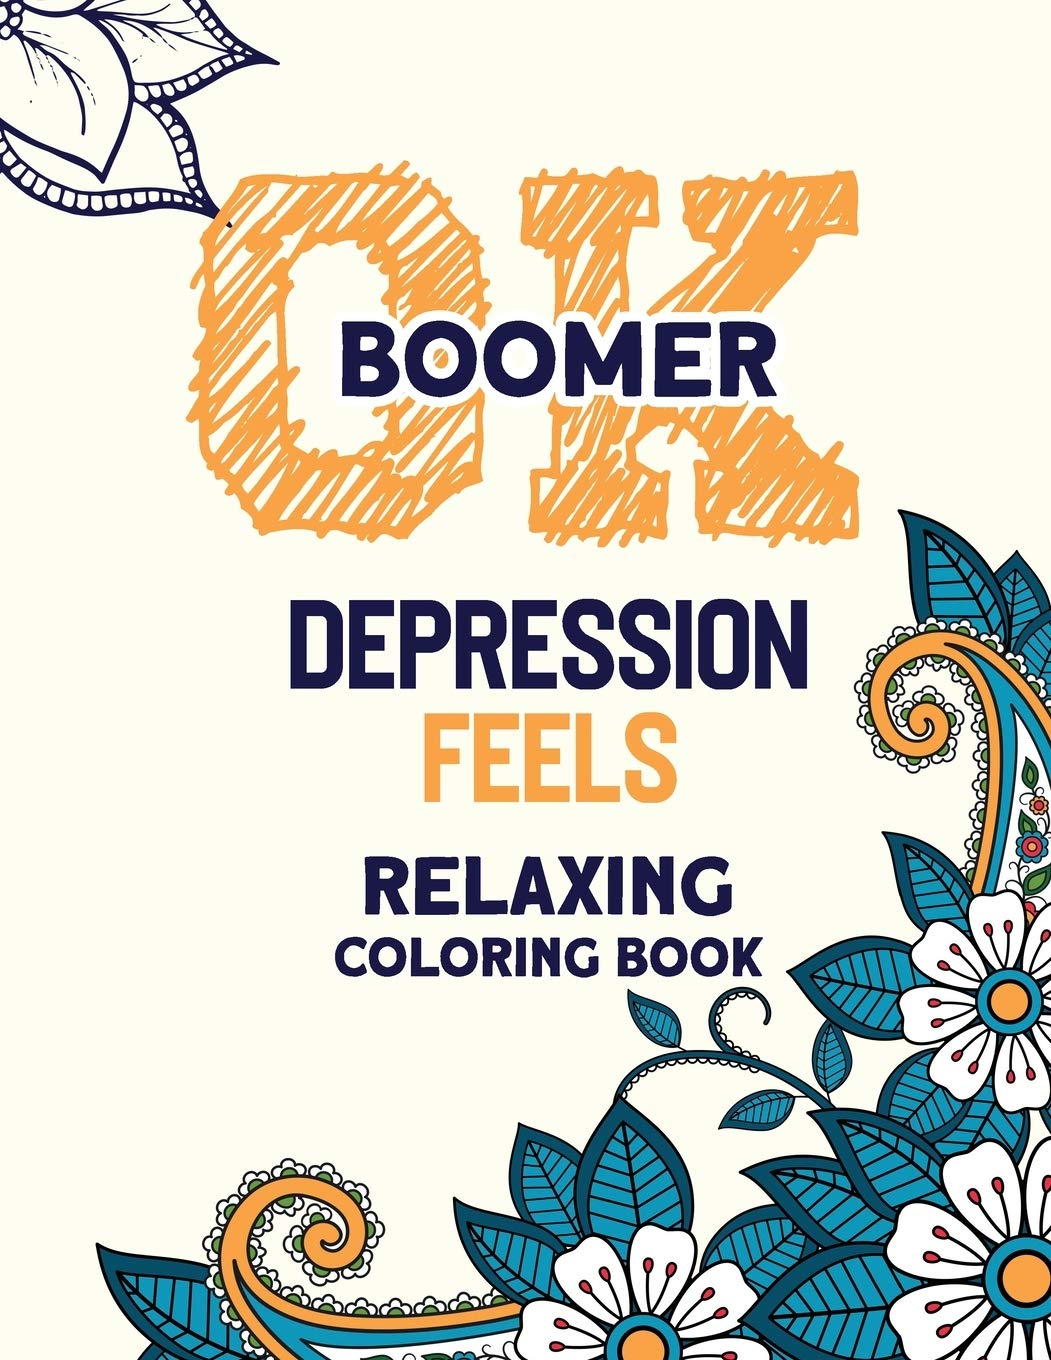 Amazon Com Ok Boomer Depression Feels Relaxing Coloring Book Funny Anxiety Relief Coloring Book With Inspirational Quotes Anti Stress Swear Word Coloring Books For Grown Ups 9781672779500 Studio Rns Coloring Books